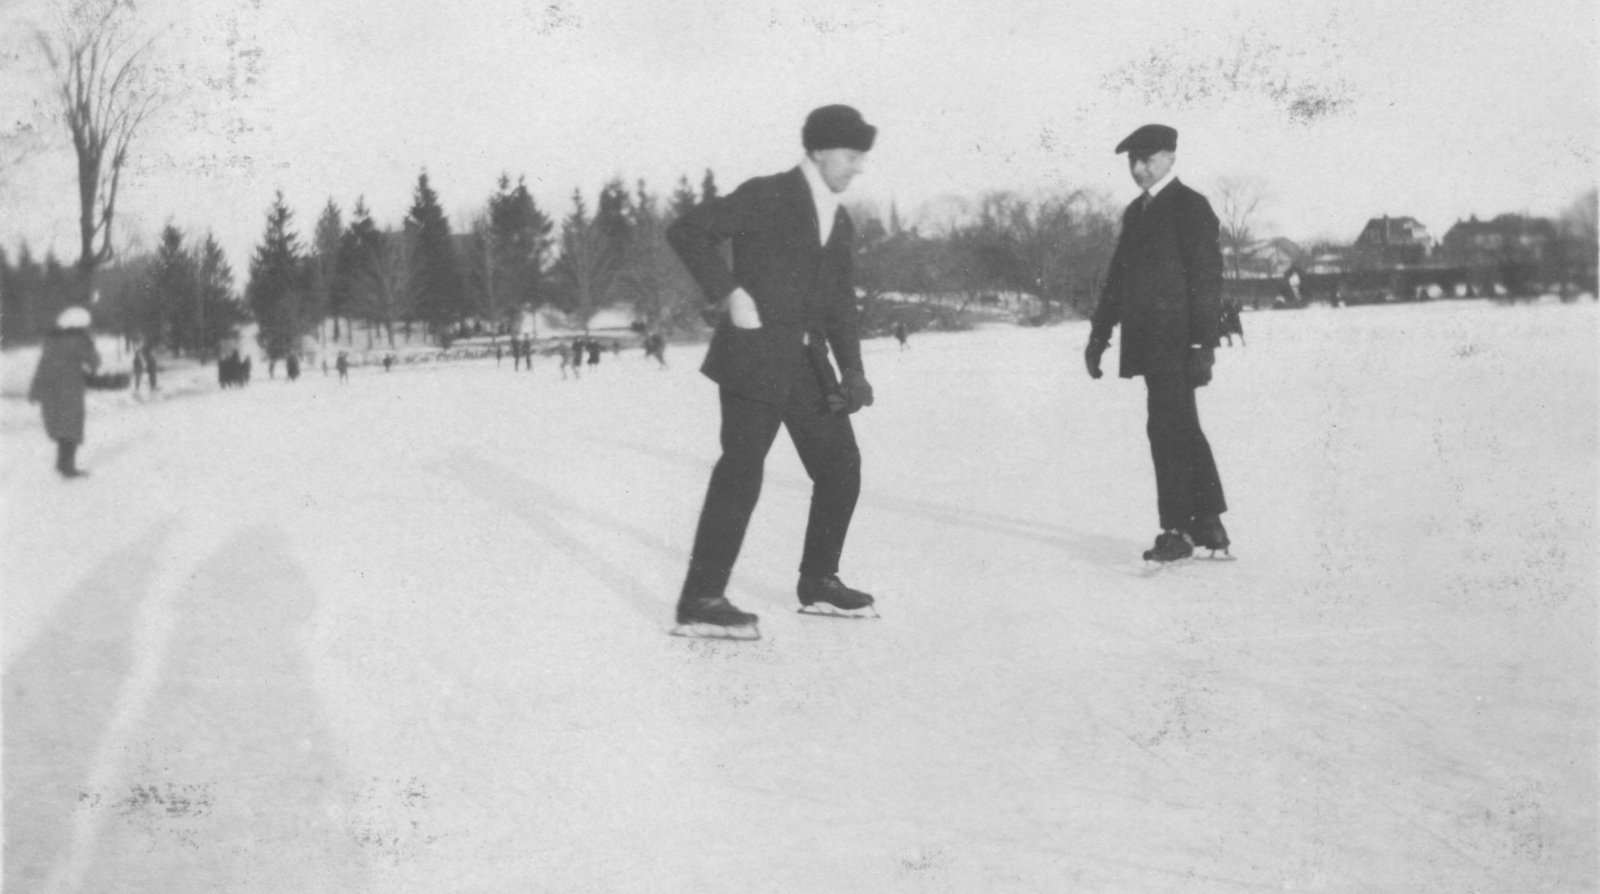 Carl Sorensen and James Vorkoper ice skating in Guelph, Ontario